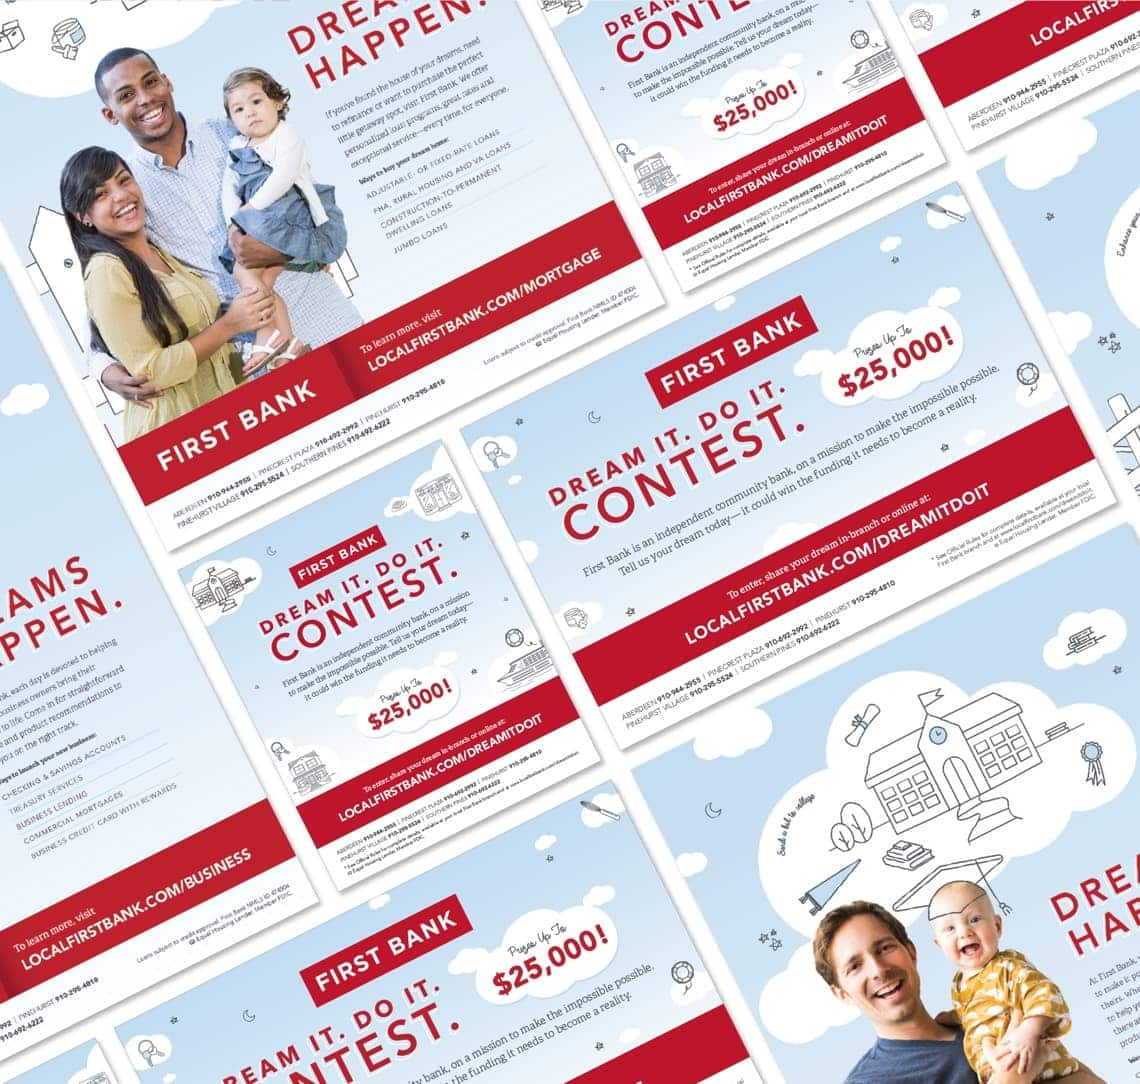 First Bank. Dream It. Do It. Contest It. print materials